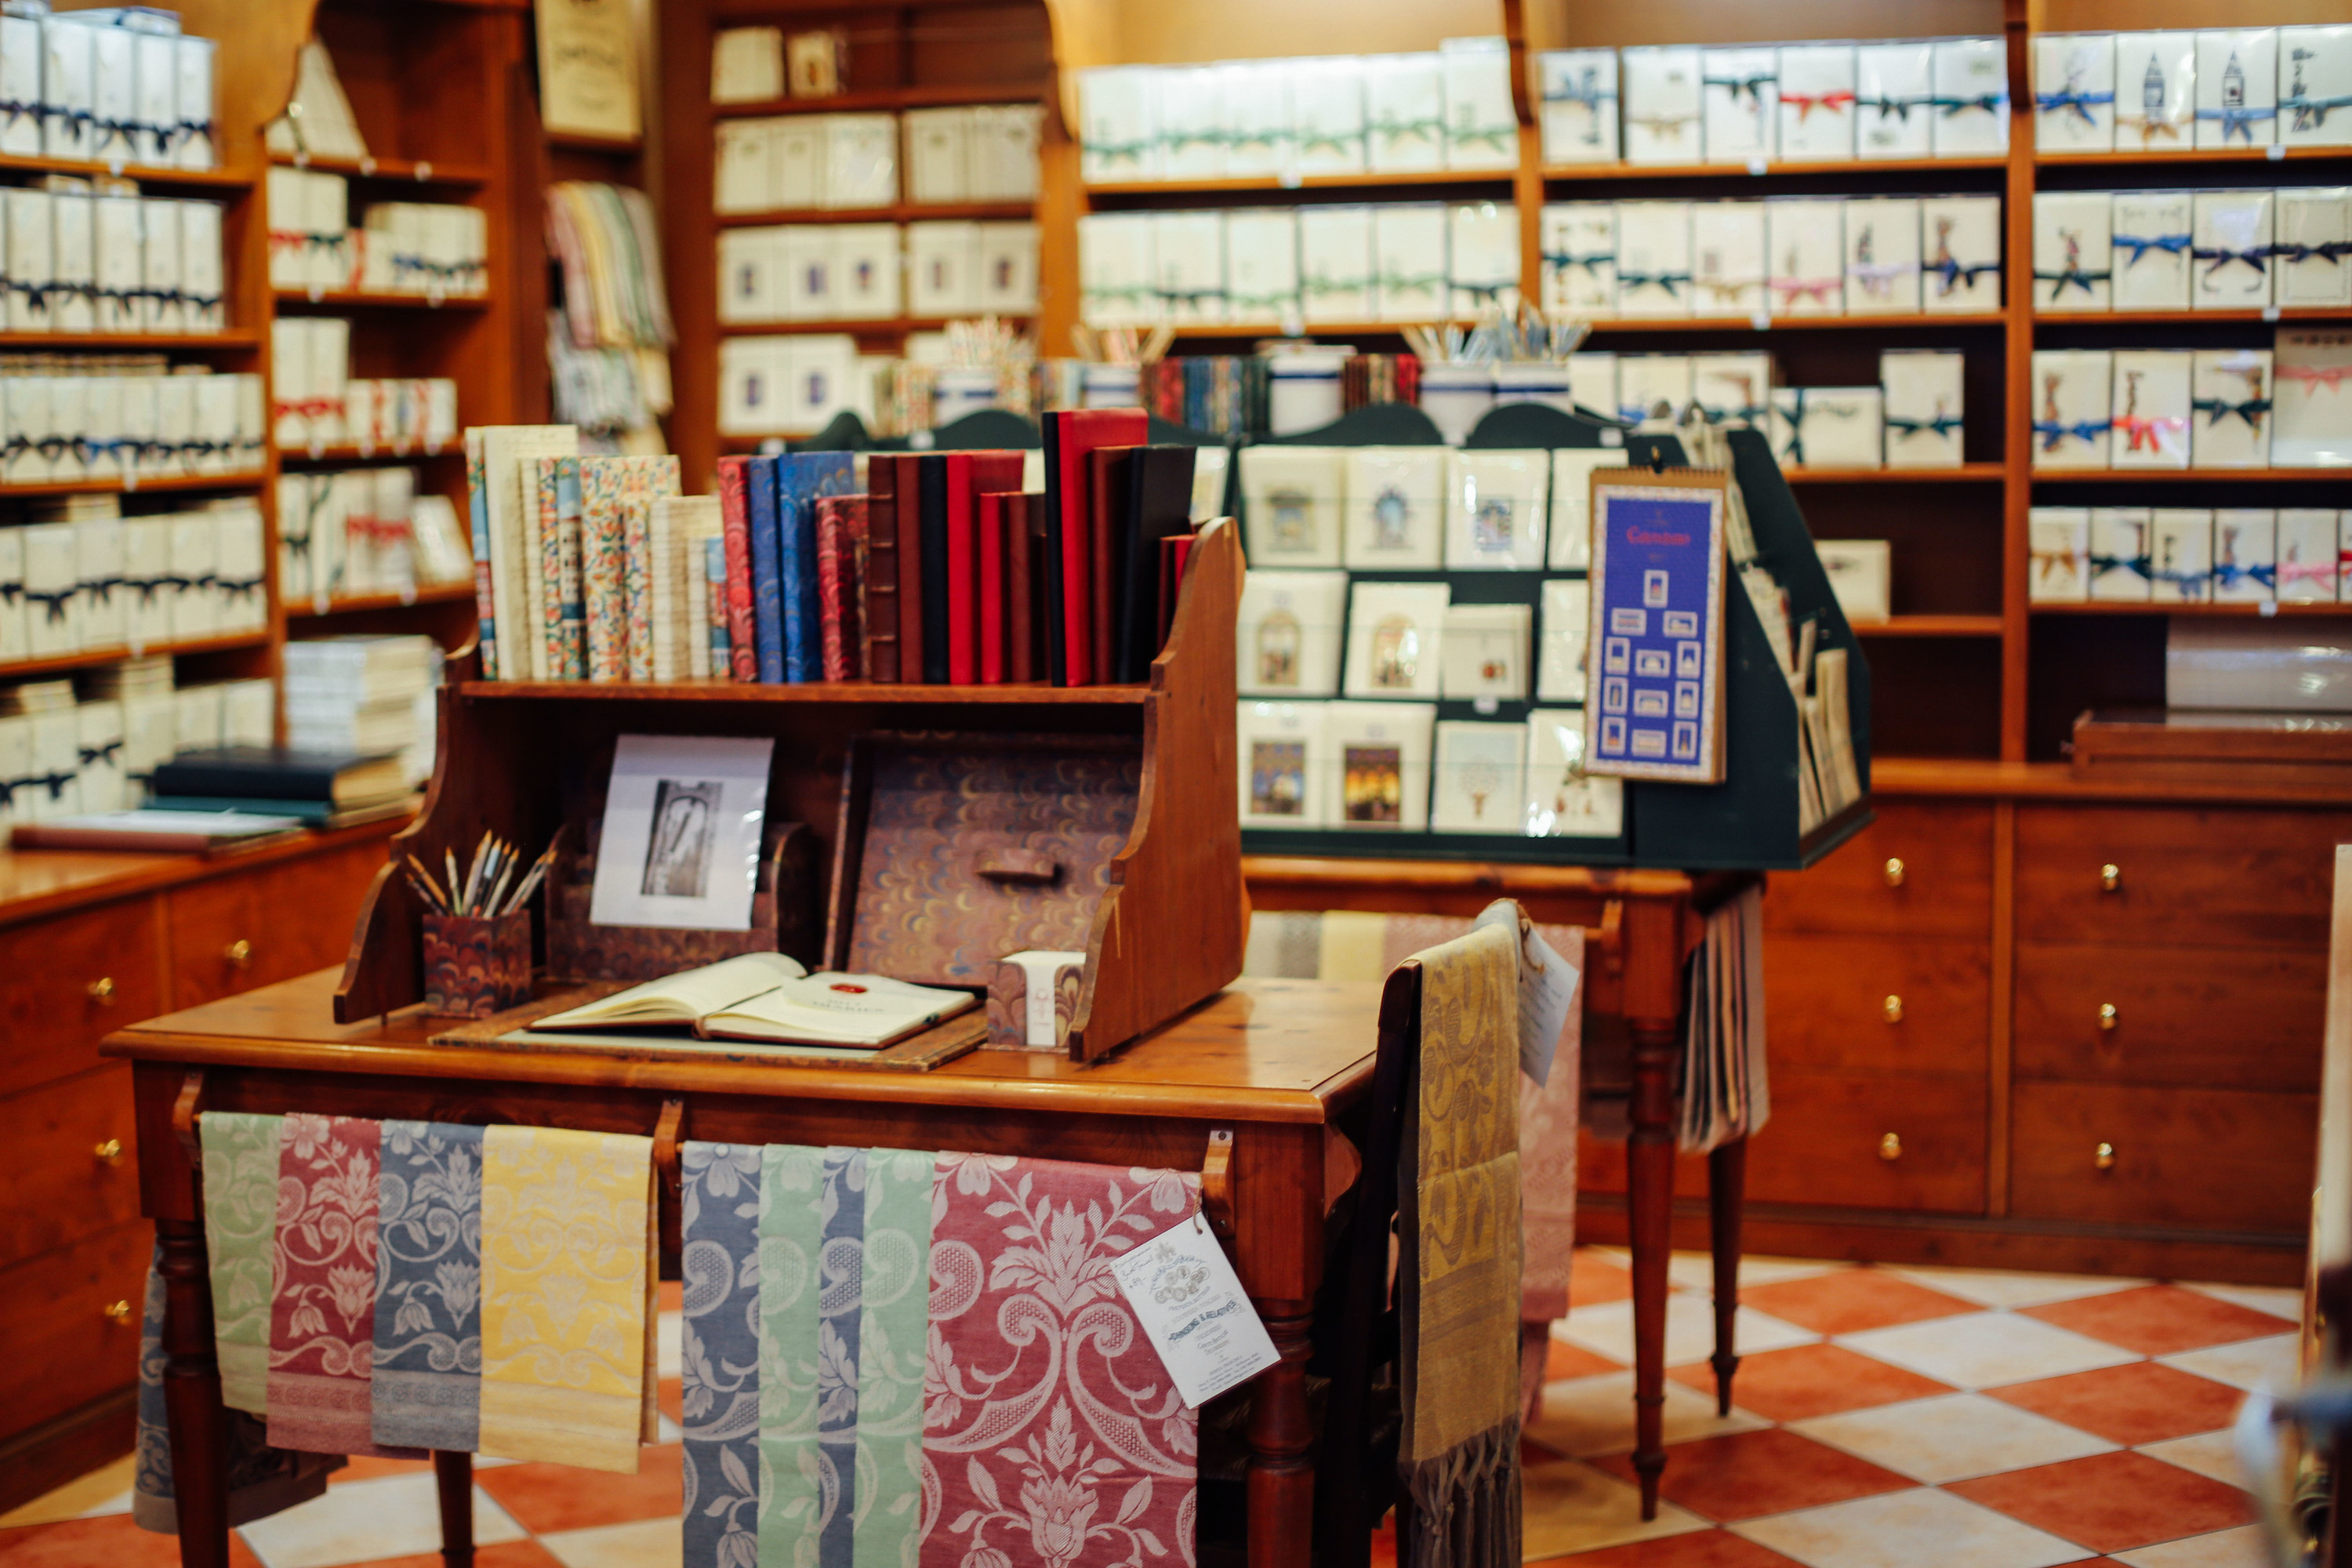 Melbourne's favourite local newsagents and stationary shops